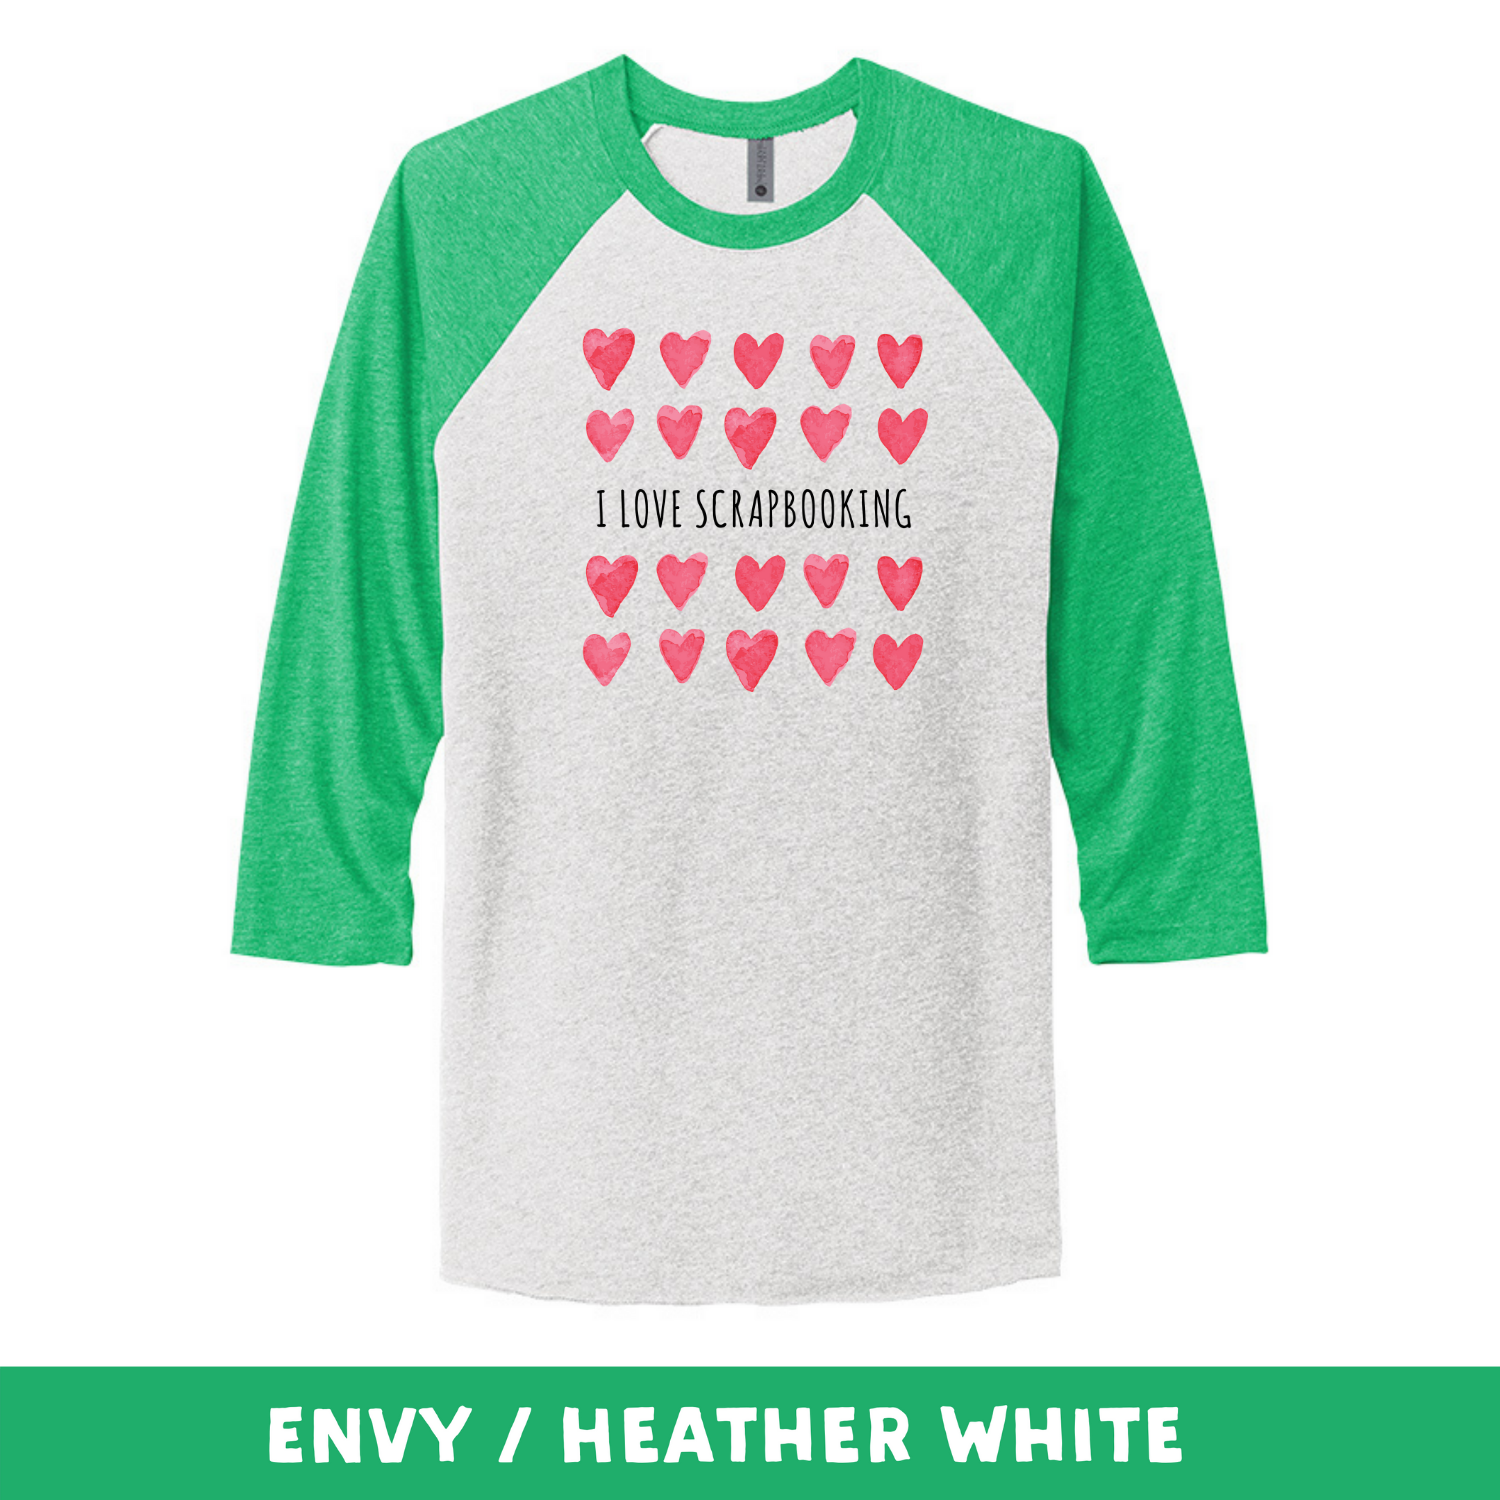 Envy Heather White - Unisex Tri-Blend 3/4 Sleeve Raglan Tee - I Love Scrapbooking